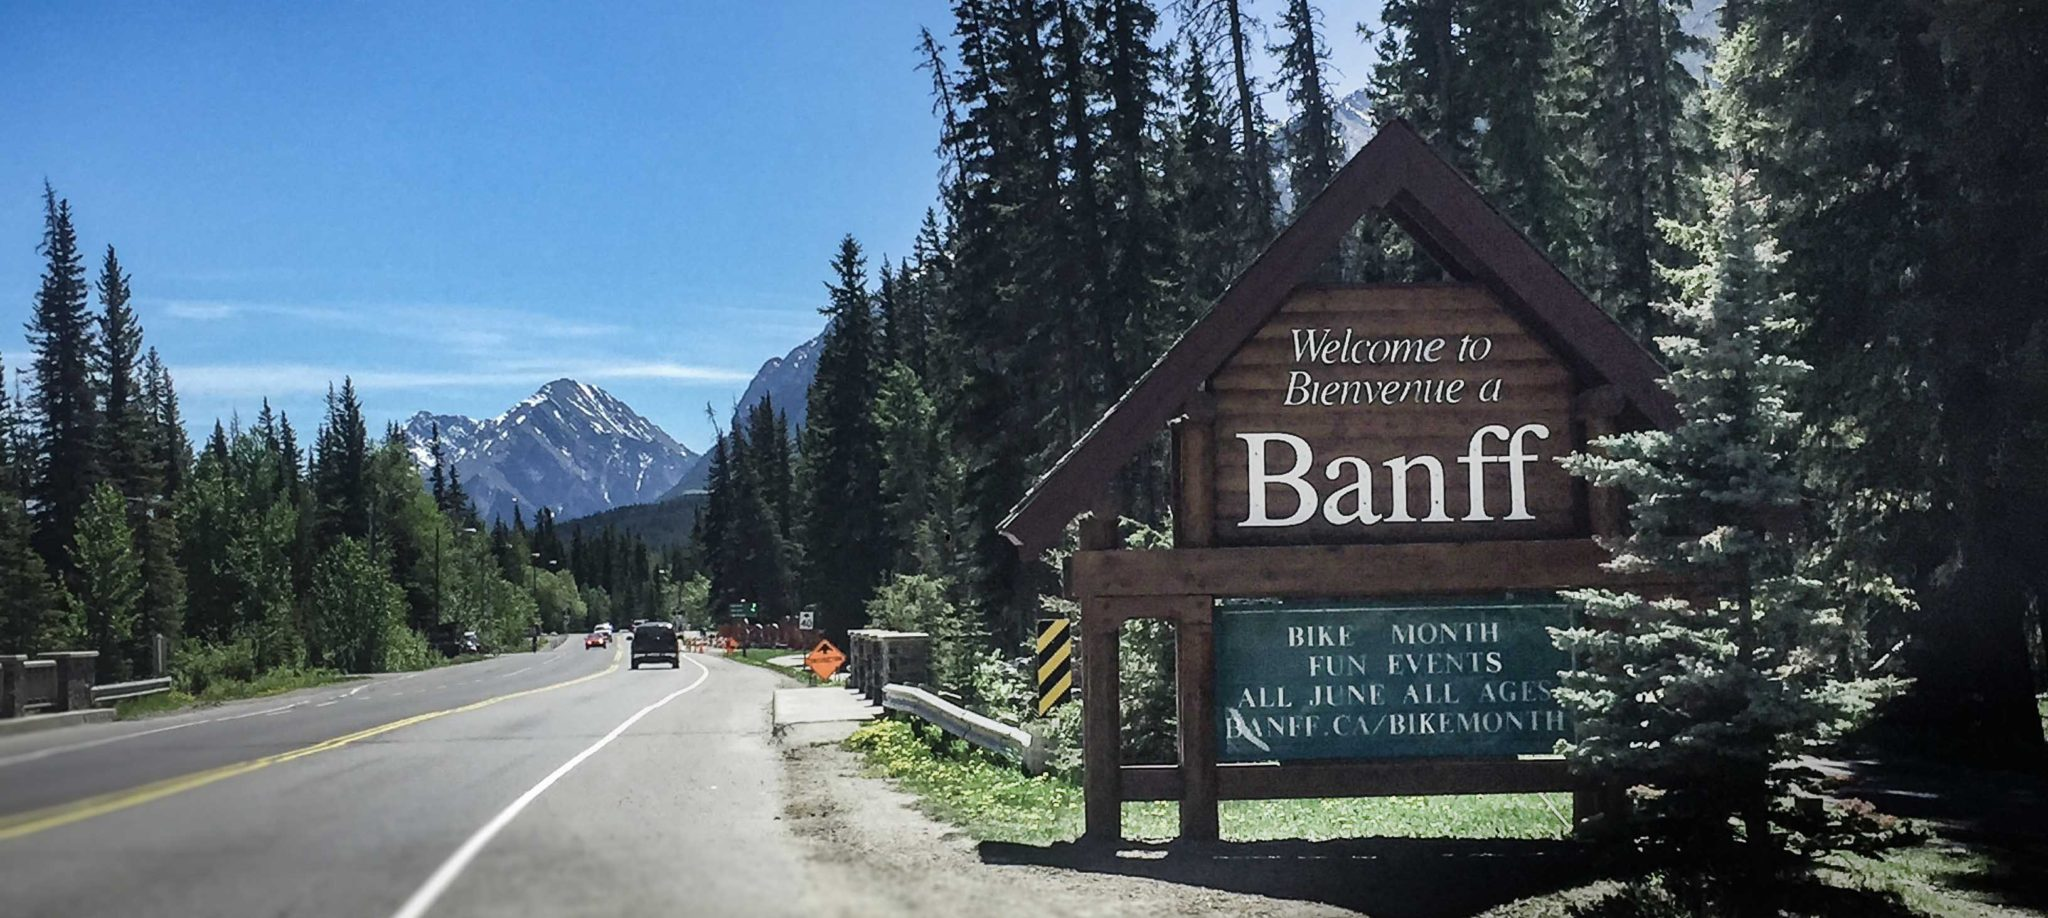 Banff, Alberta, Canada, Rocky Mountains